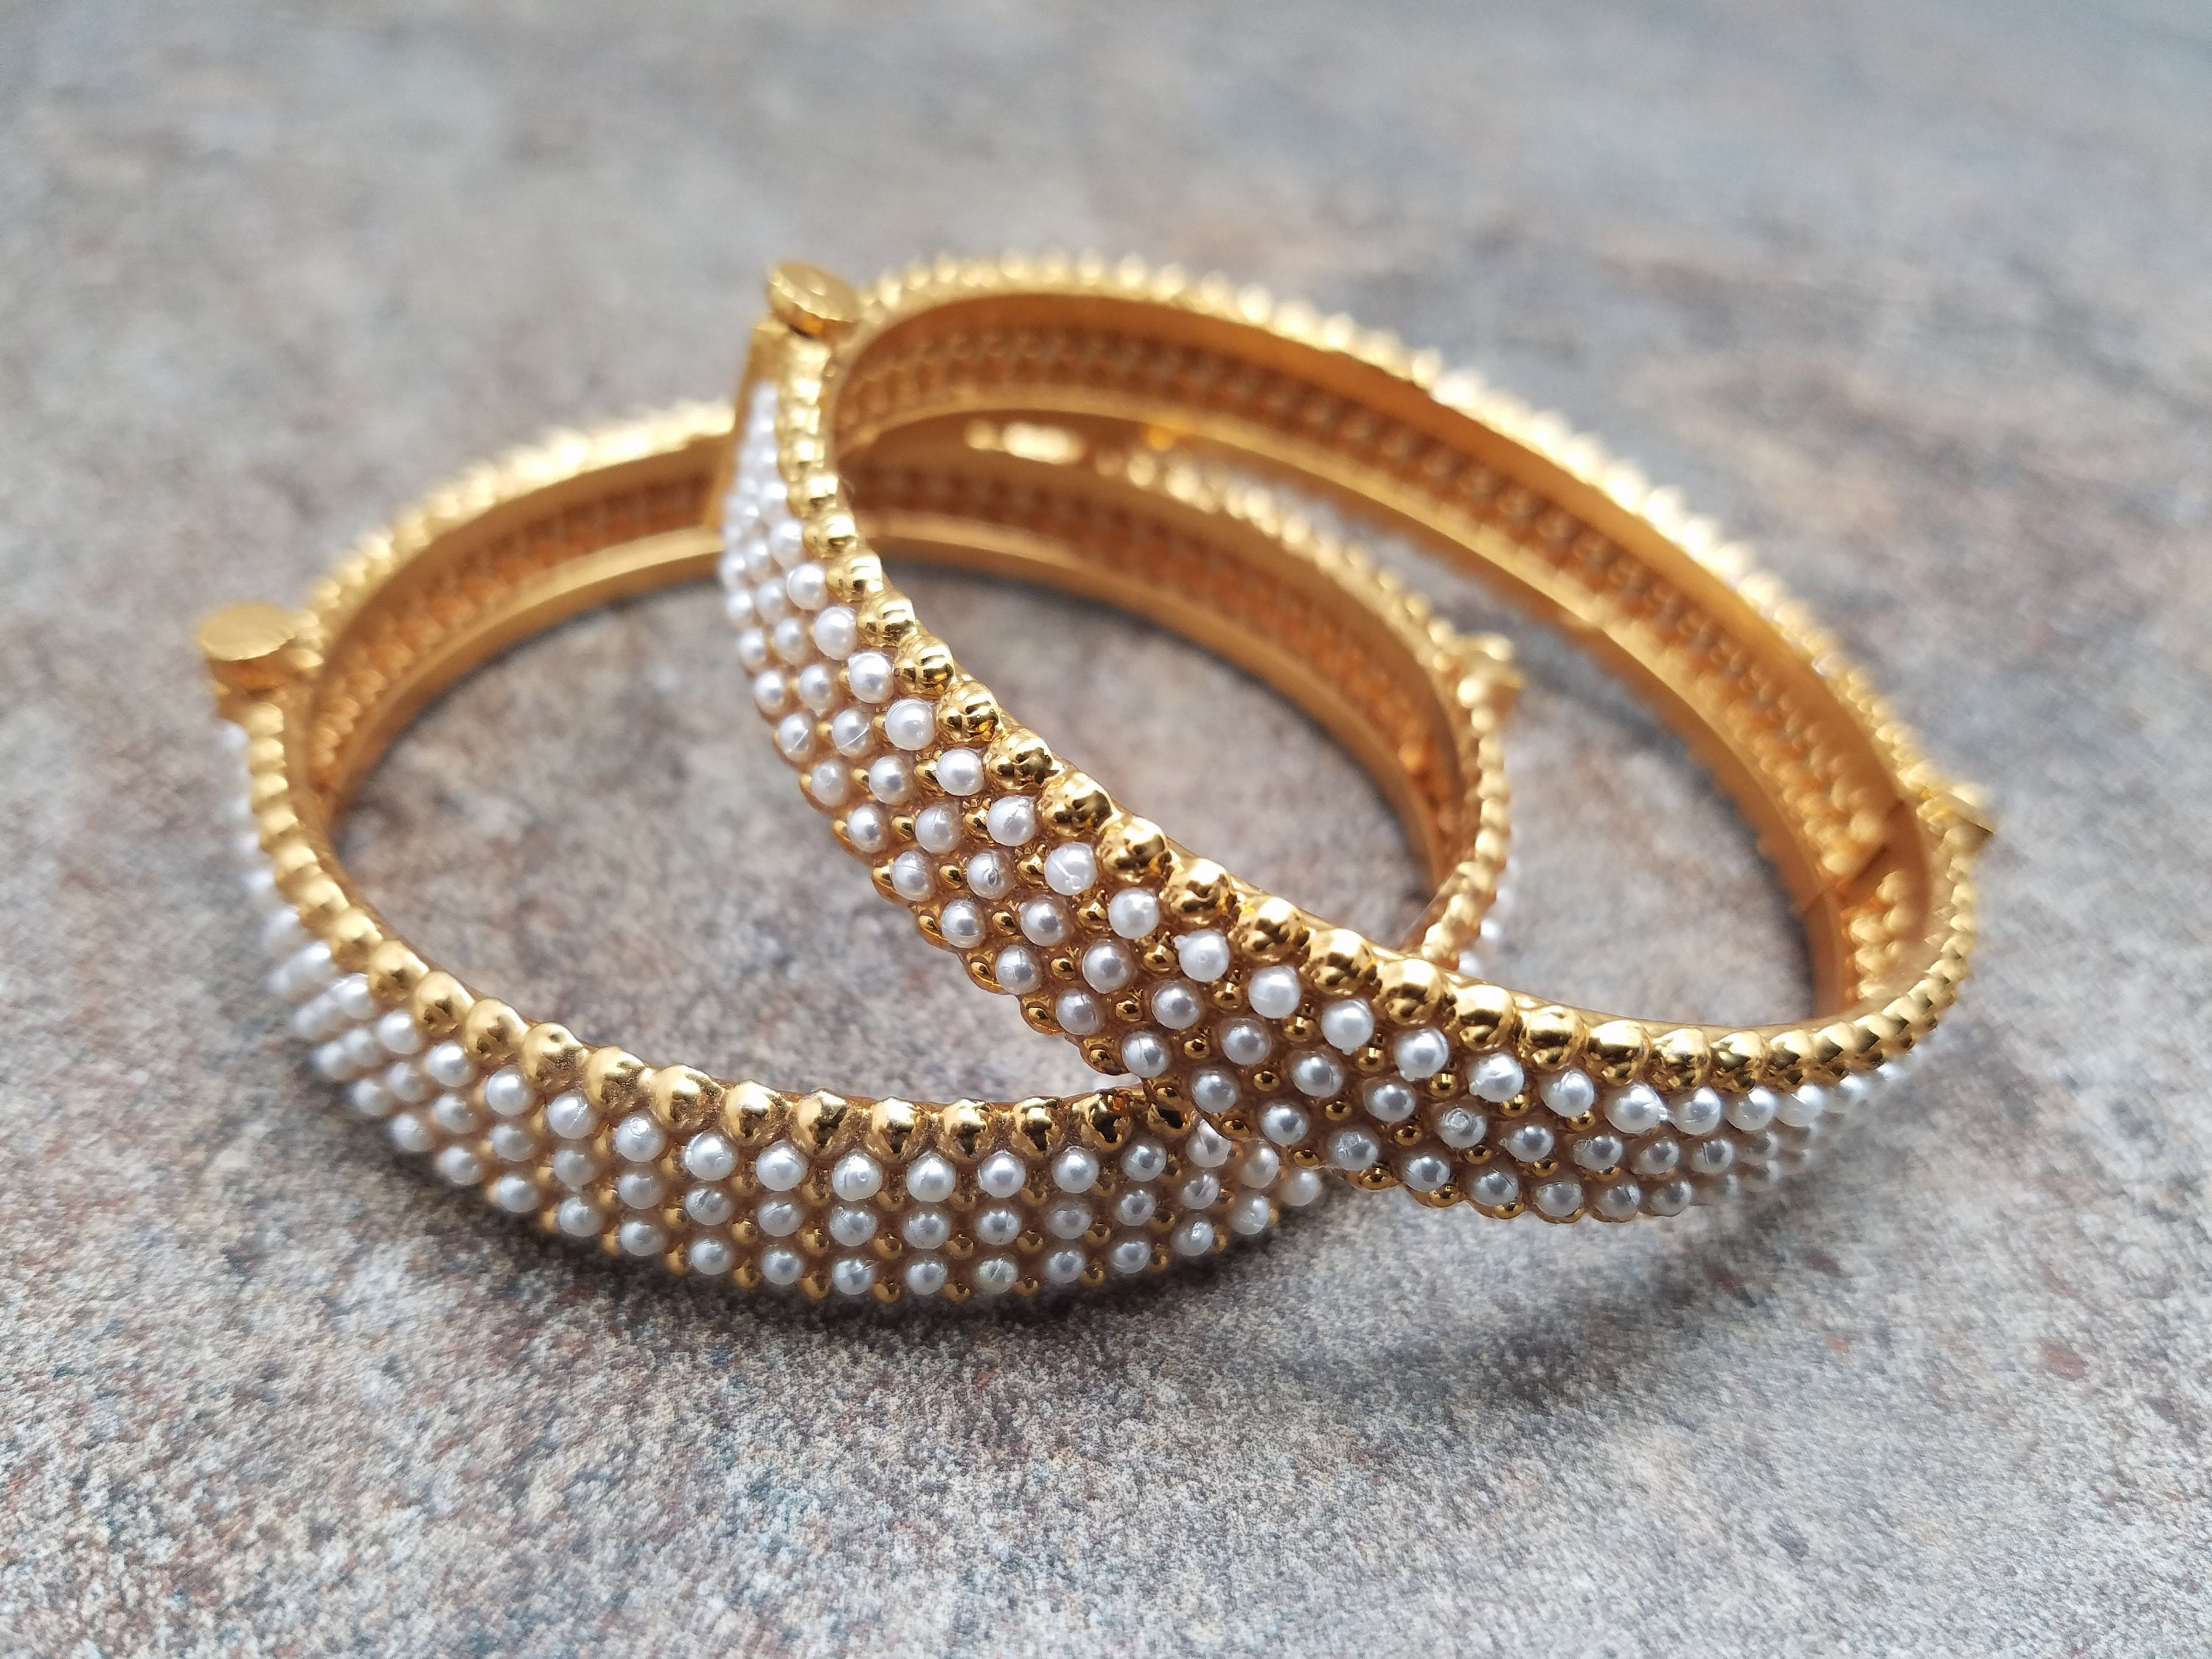 Pair of Bangles, White Pearl on Gold Kada, Size 2.4 or Size 2.6